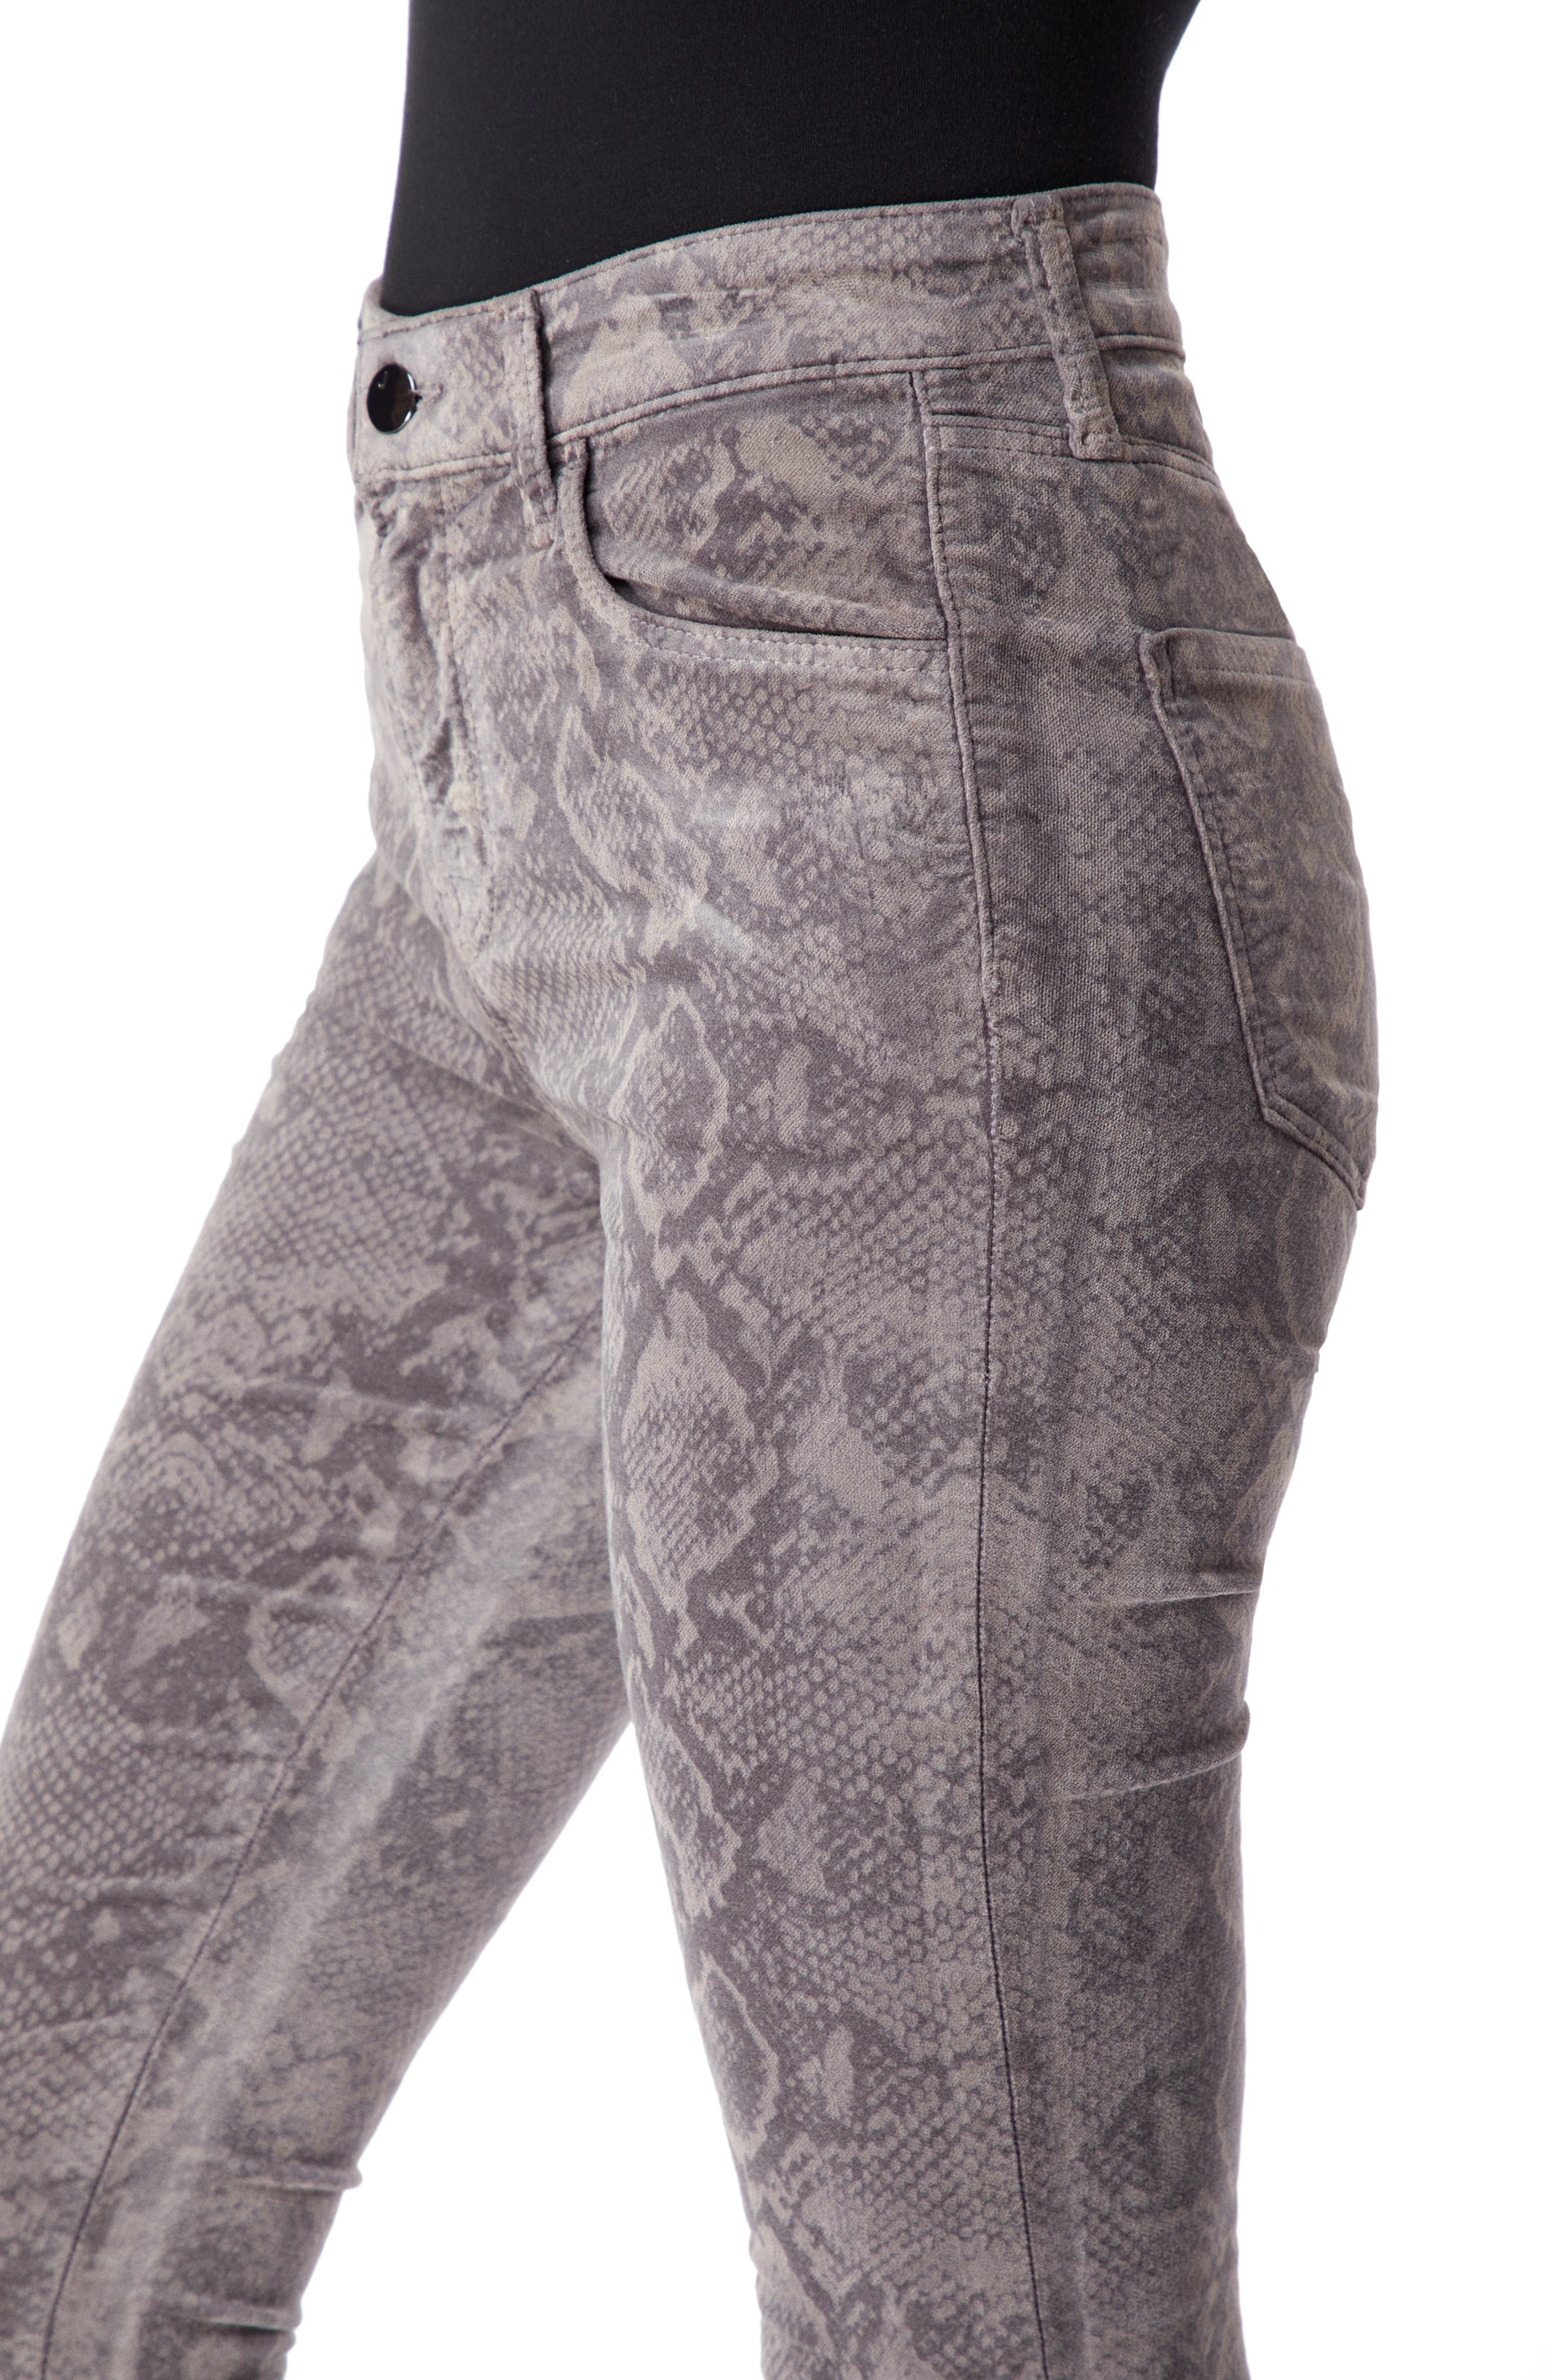 Maria High Waist Velvet Skinny Jeans,                             Alternate thumbnail 5, color,                             SNAKEBITE